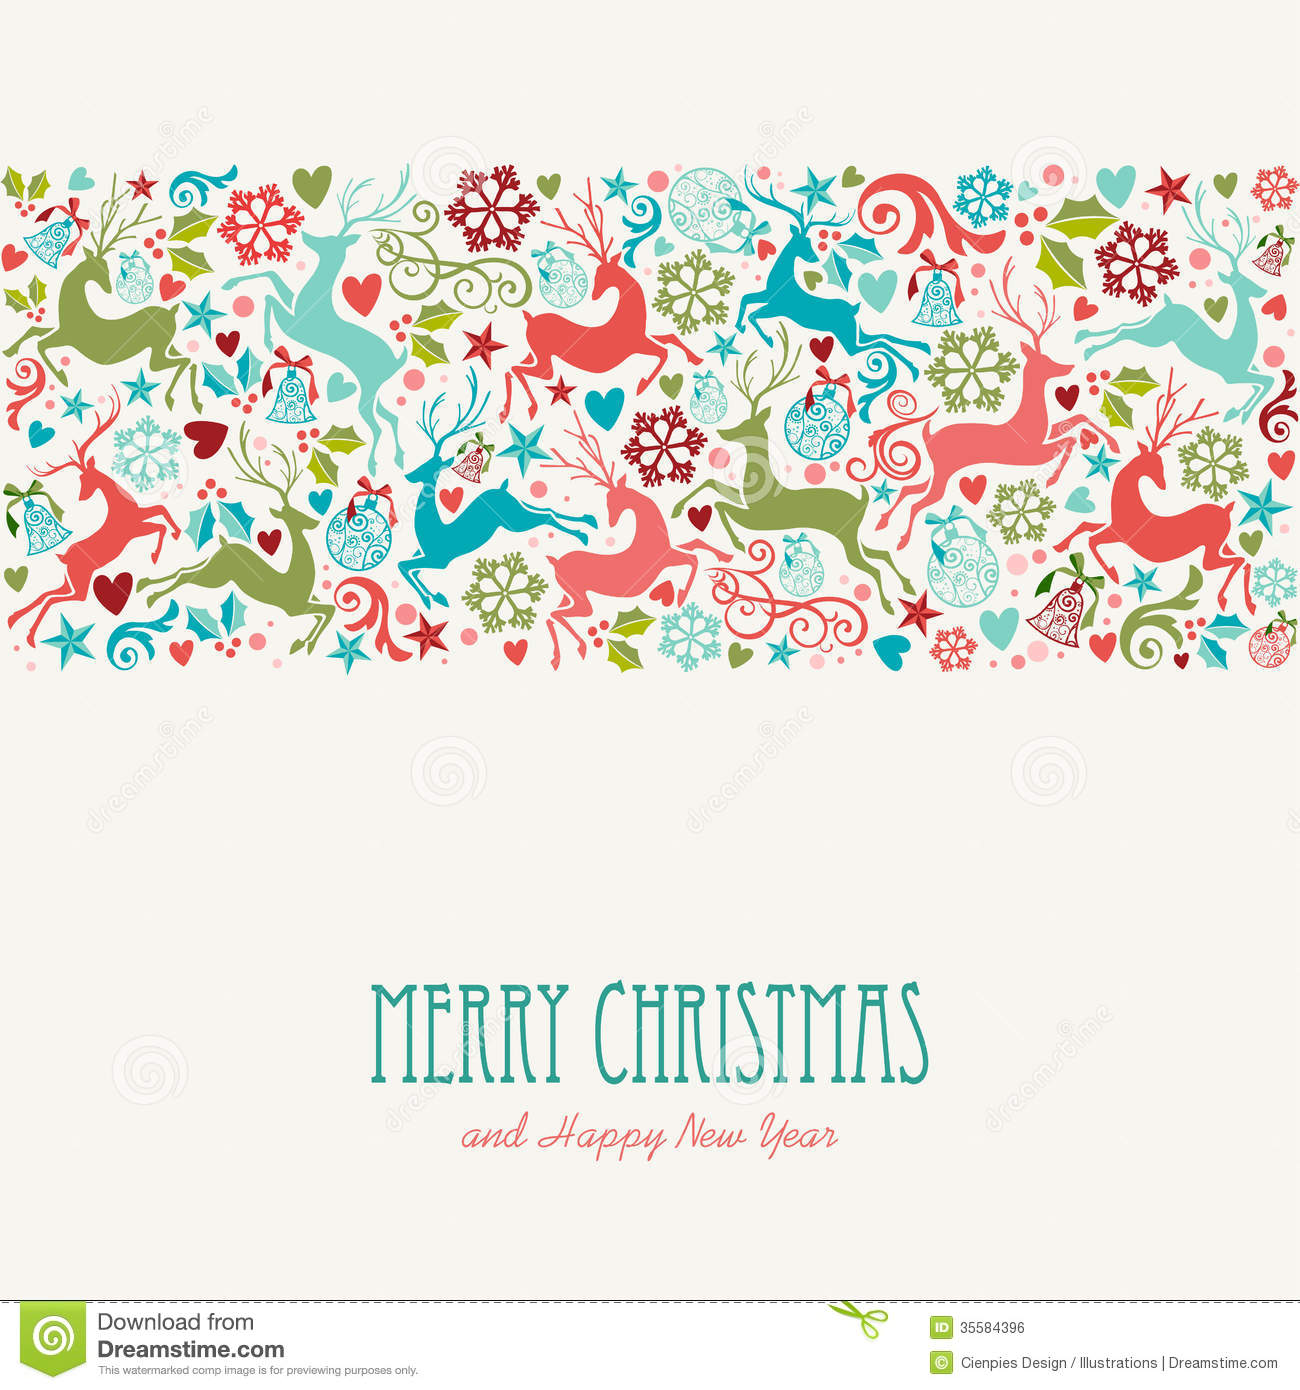 Merry christmas and happy new year greeting card stock vector merry christmas and happy new year greeting card kristyandbryce Choice Image